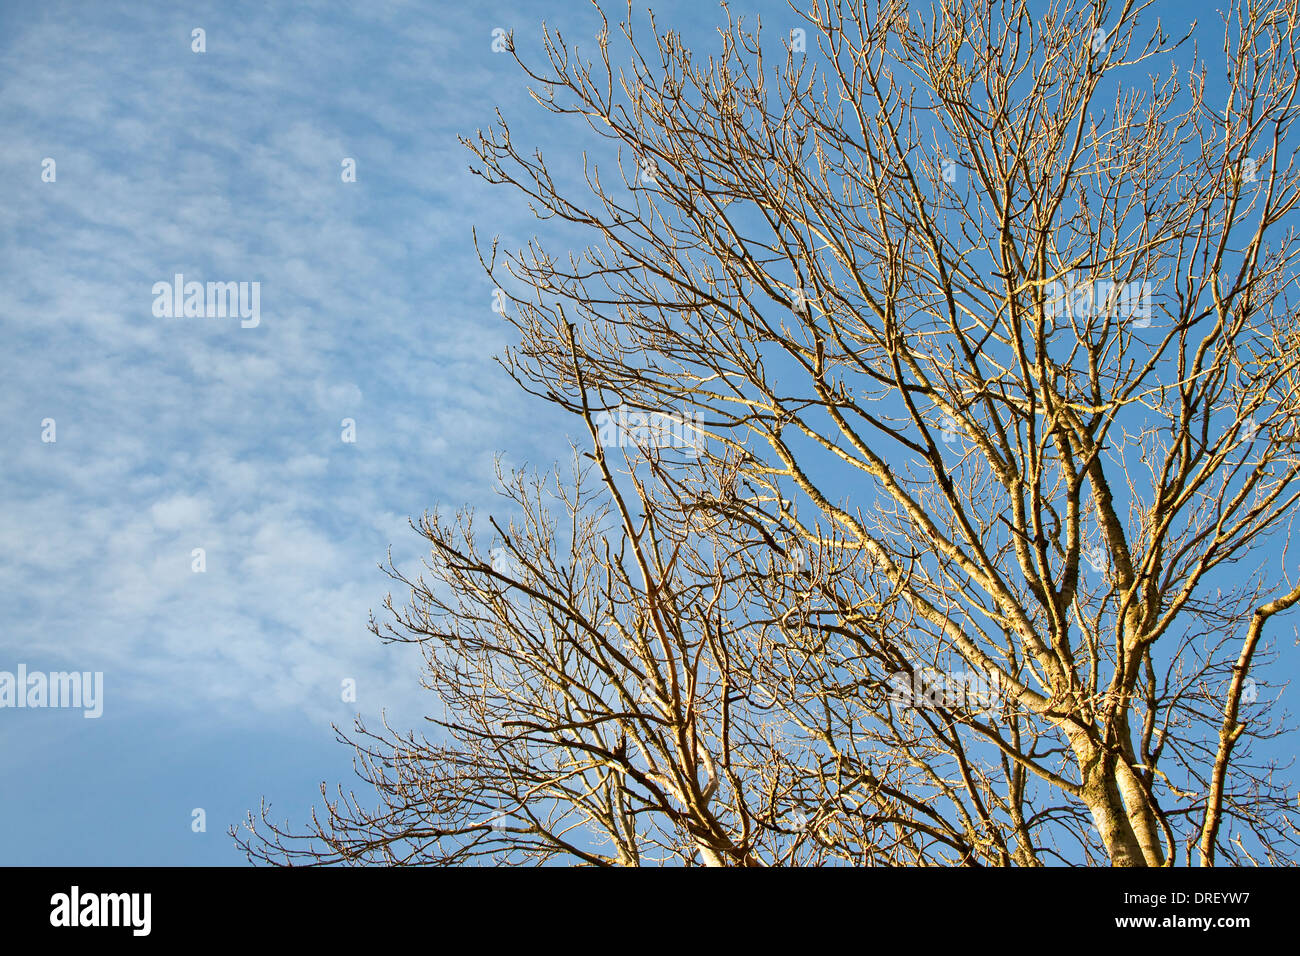 A view of an ash tree from below with sunlit bare branches against a blue sky with clouds - Stock Image